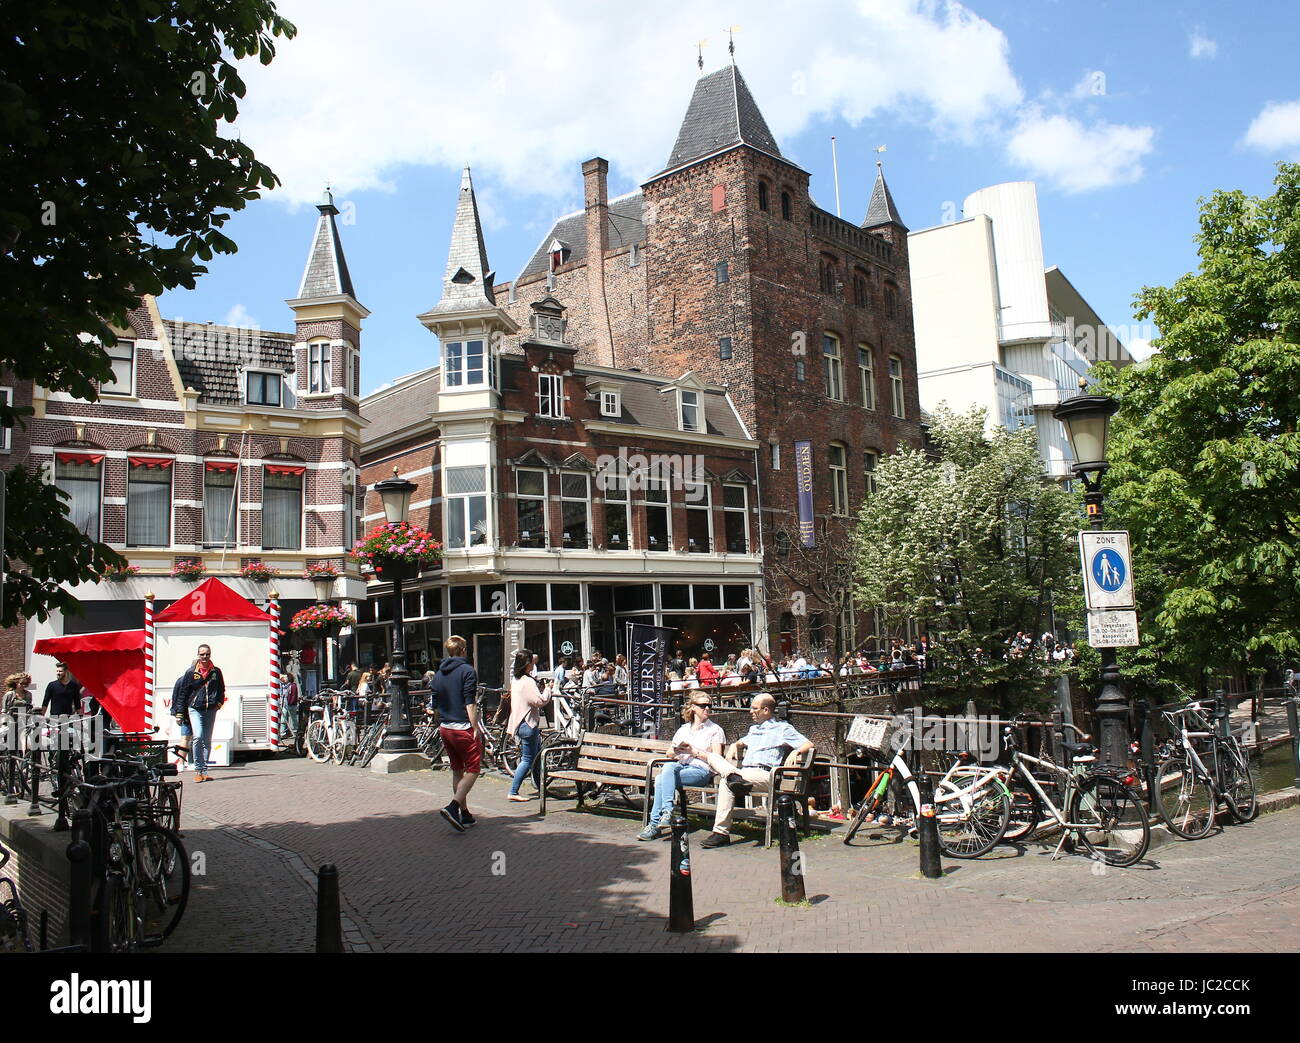 Oudegracht canal in the old inner city of Utrecht, The Netherlands with Medieval manor 'Stadskasteel Oudaen' - Stock Image